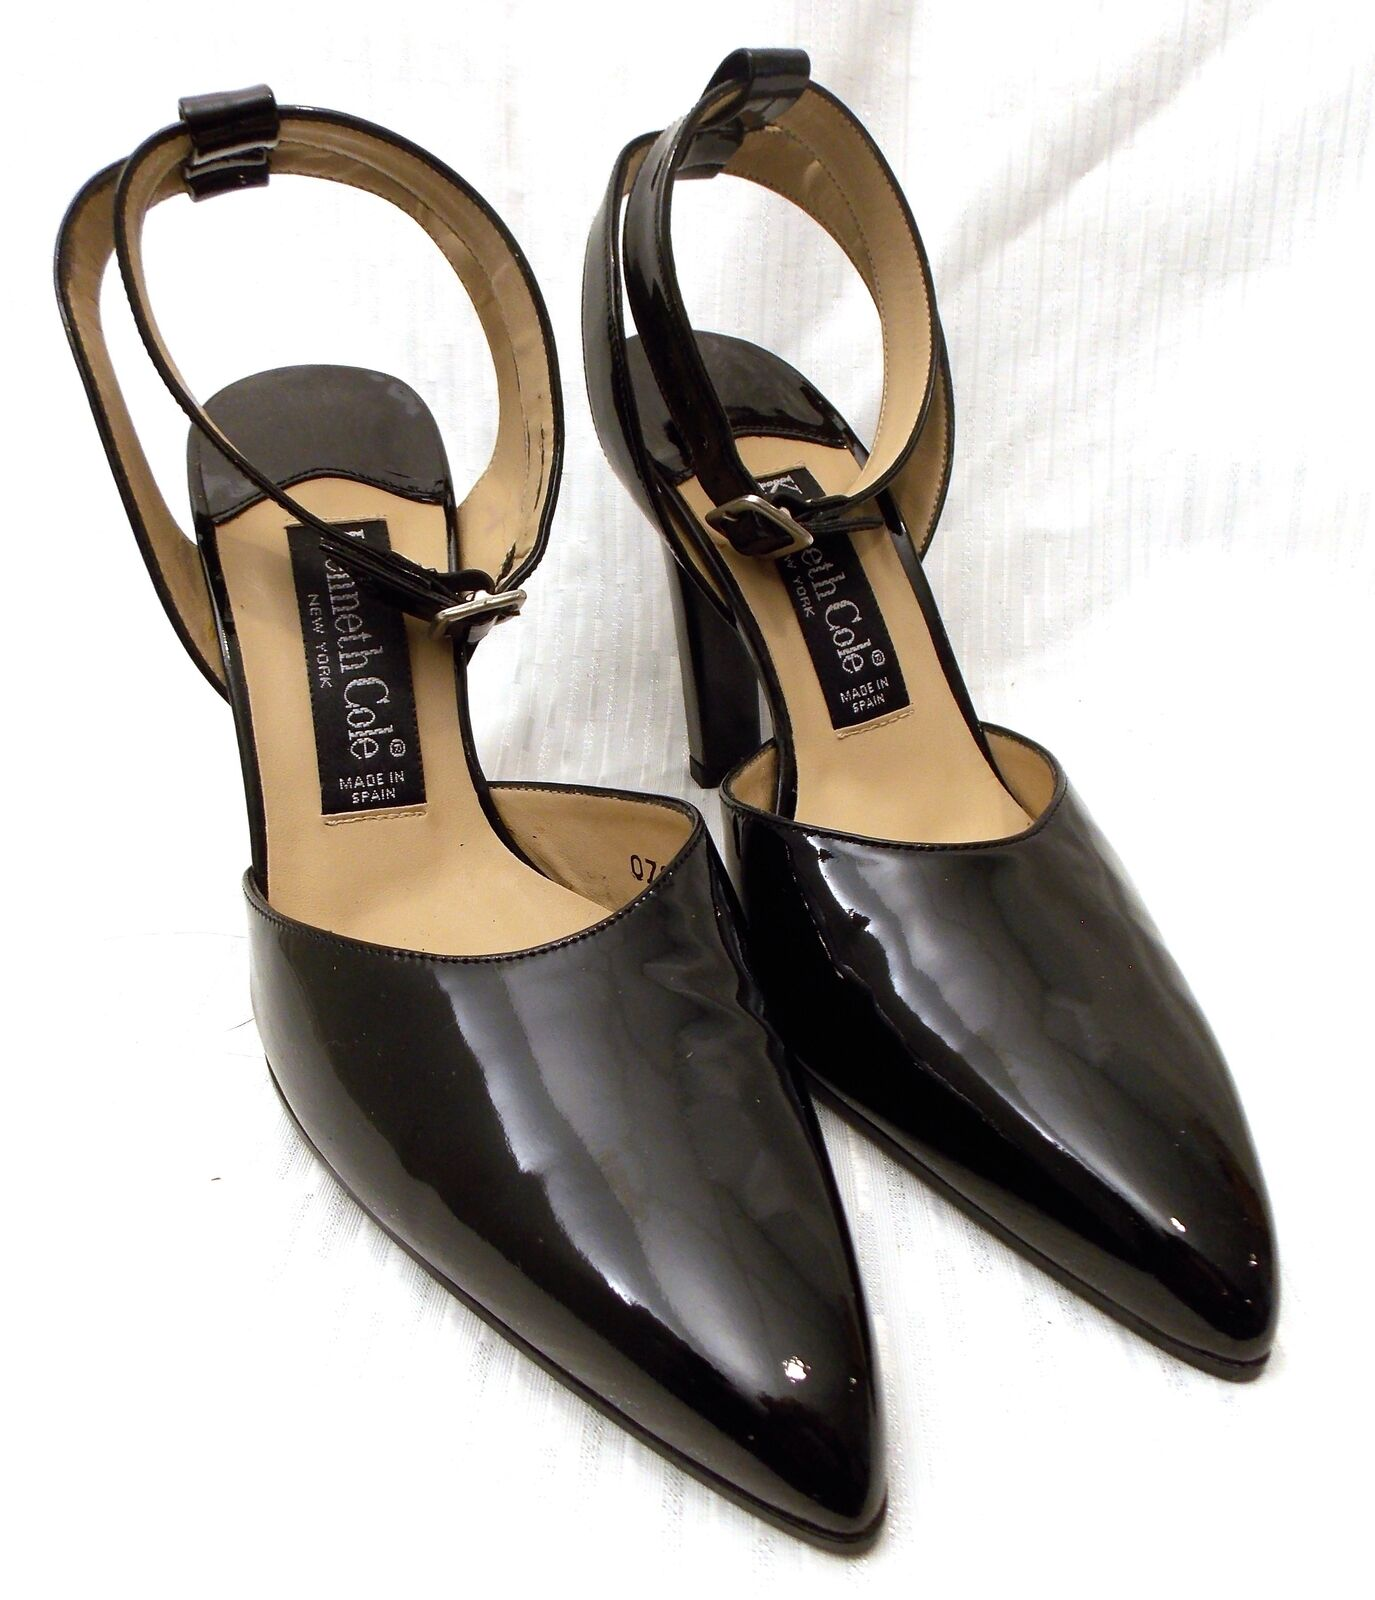 ELEGANT KENNETH COLE BLACK PATENT LEATHER ANKLE STRAP 4 HEELS WOMENS SIZE 7